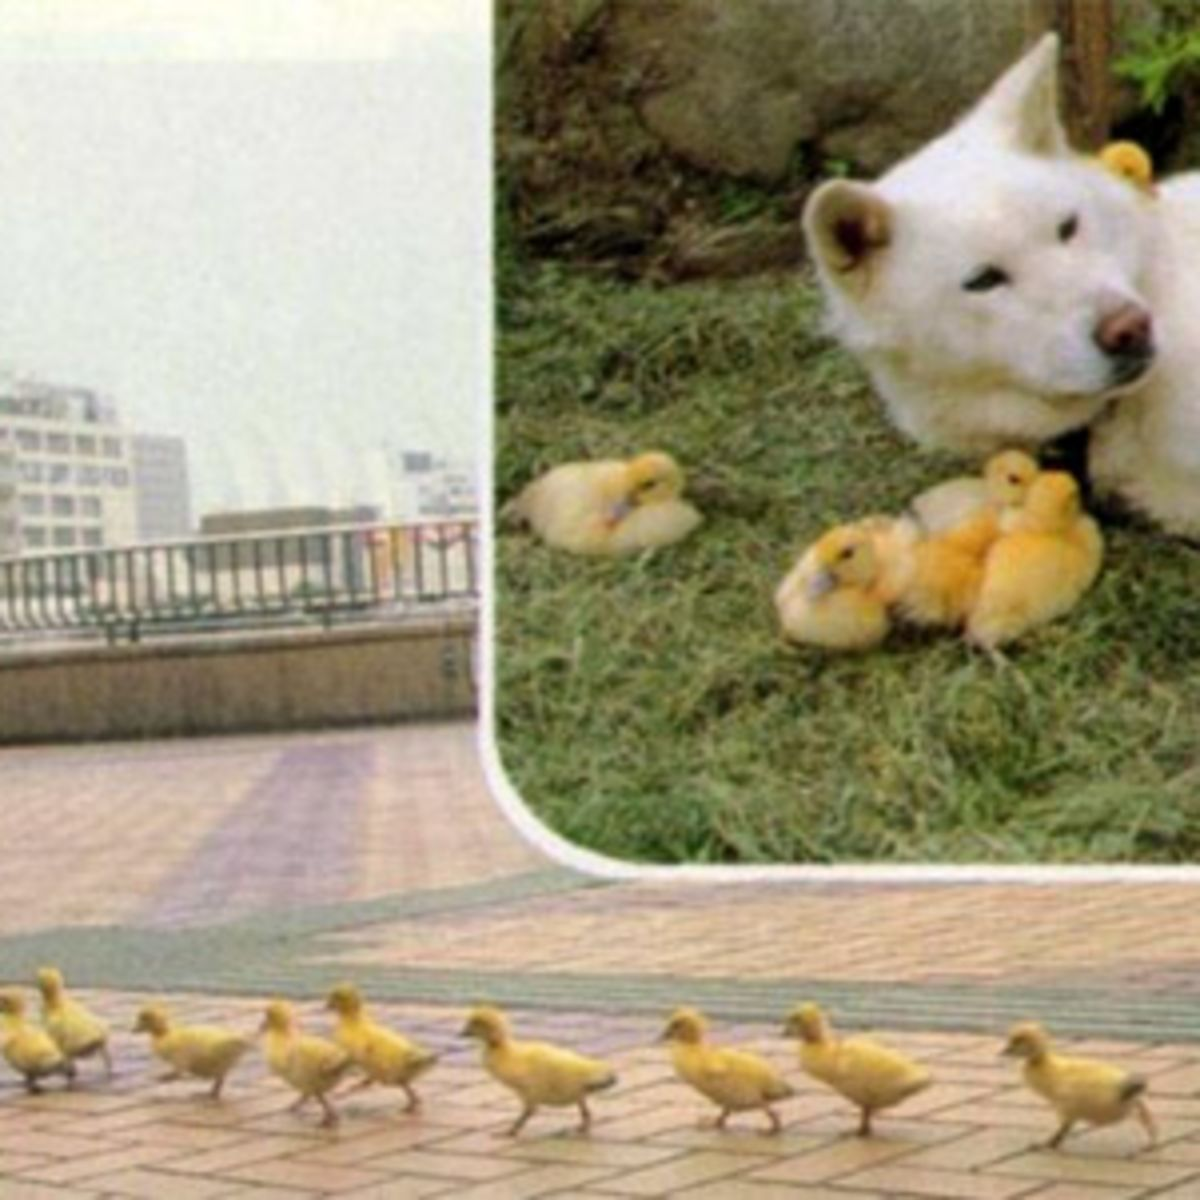 Ducklings, ducks, dog